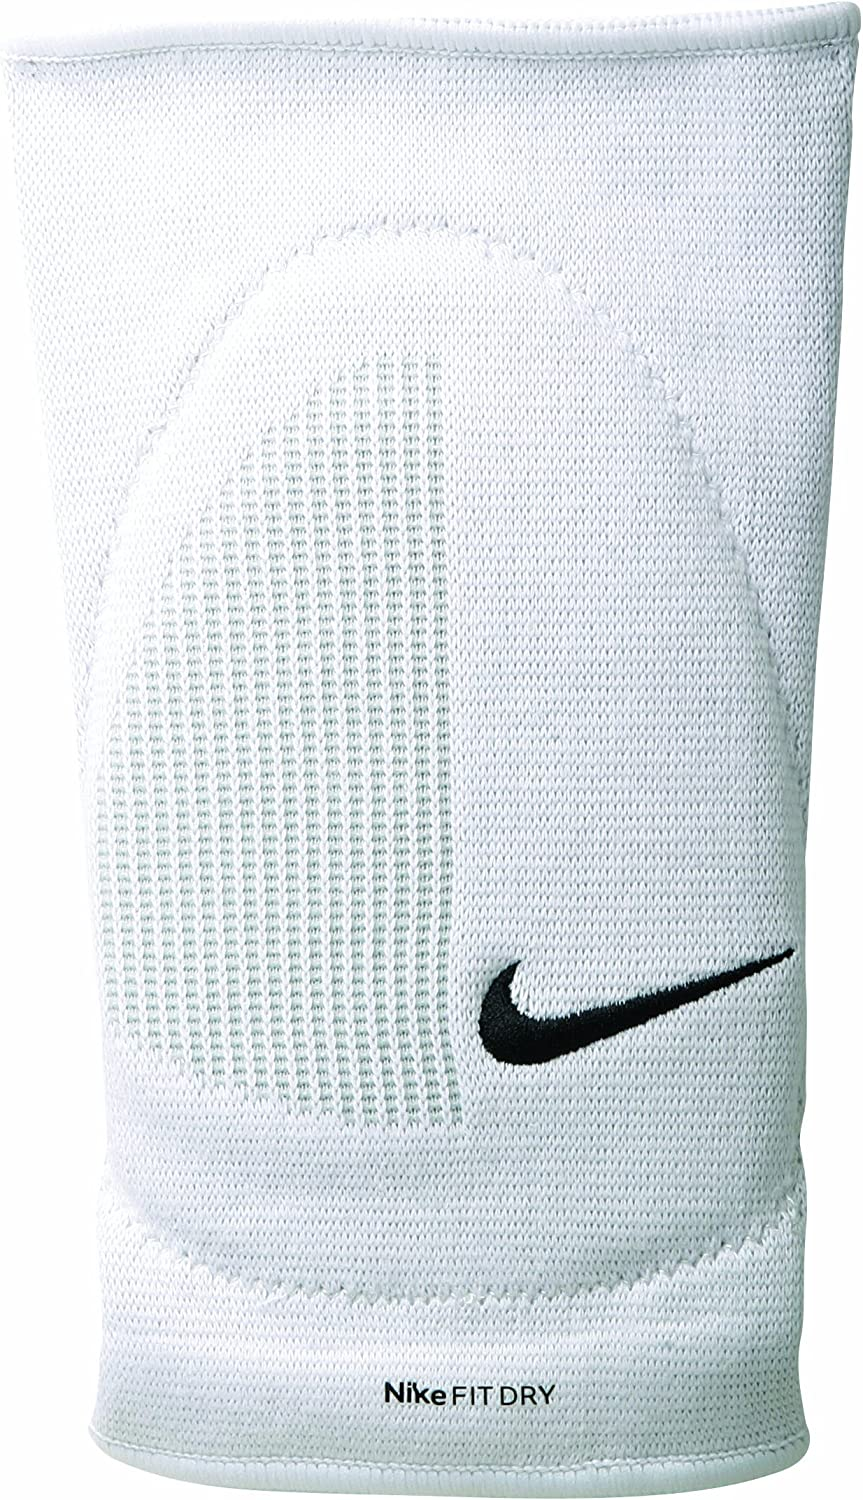 Nike Pair White Padded Knee Pads Volley Volleyball Fit Dry Skinny Elastic S M Amazon Co Uk Sports Outdoors